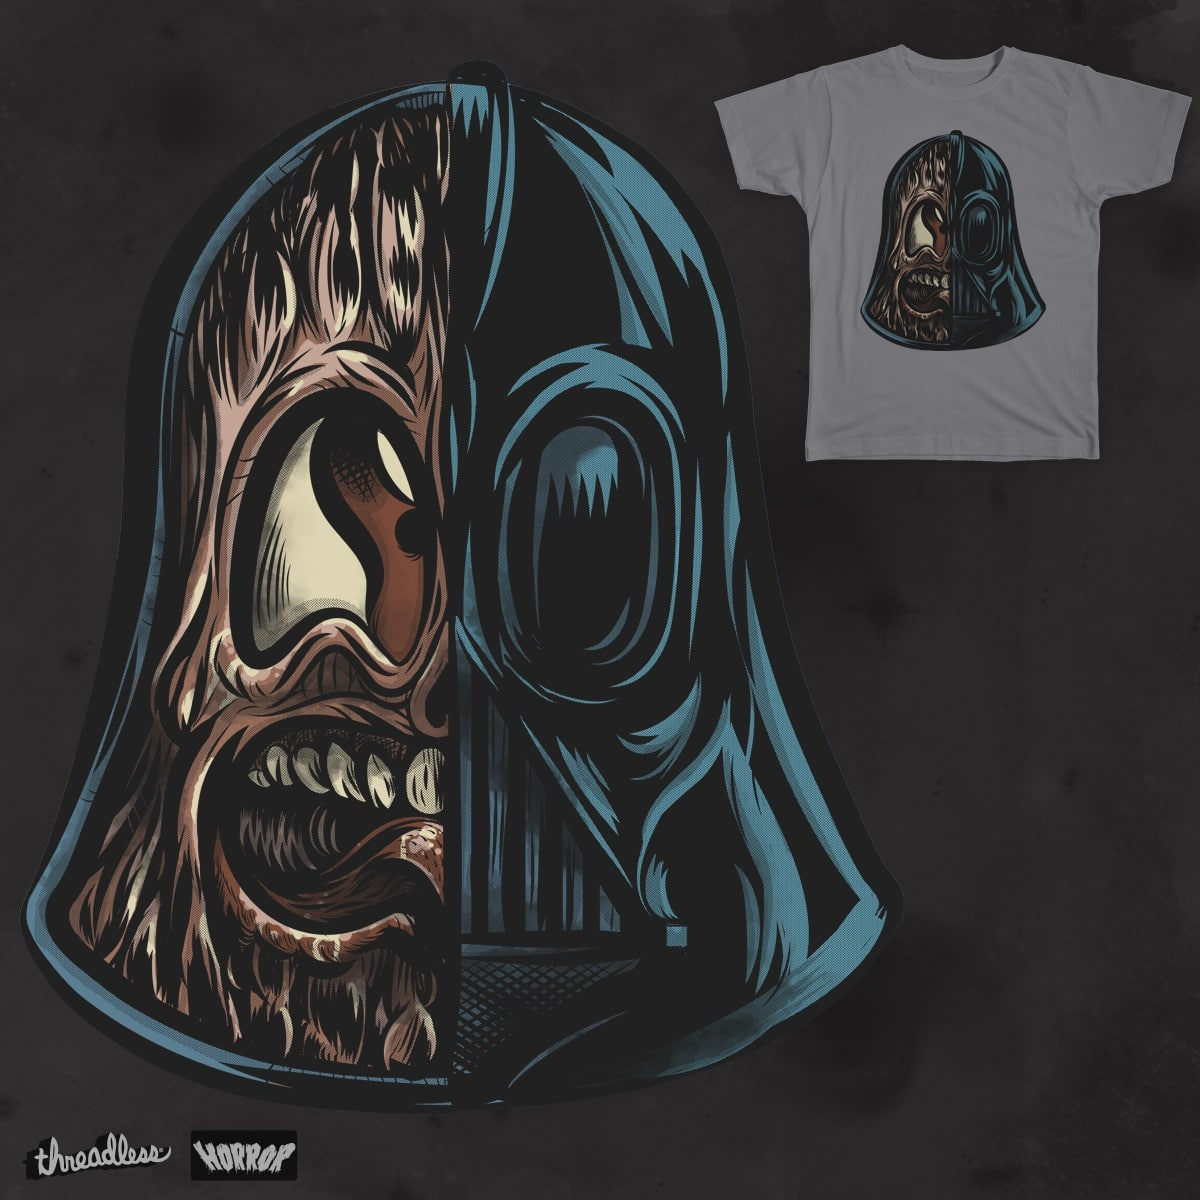 The Dark Side Of The Helmet by Gums. on Threadless